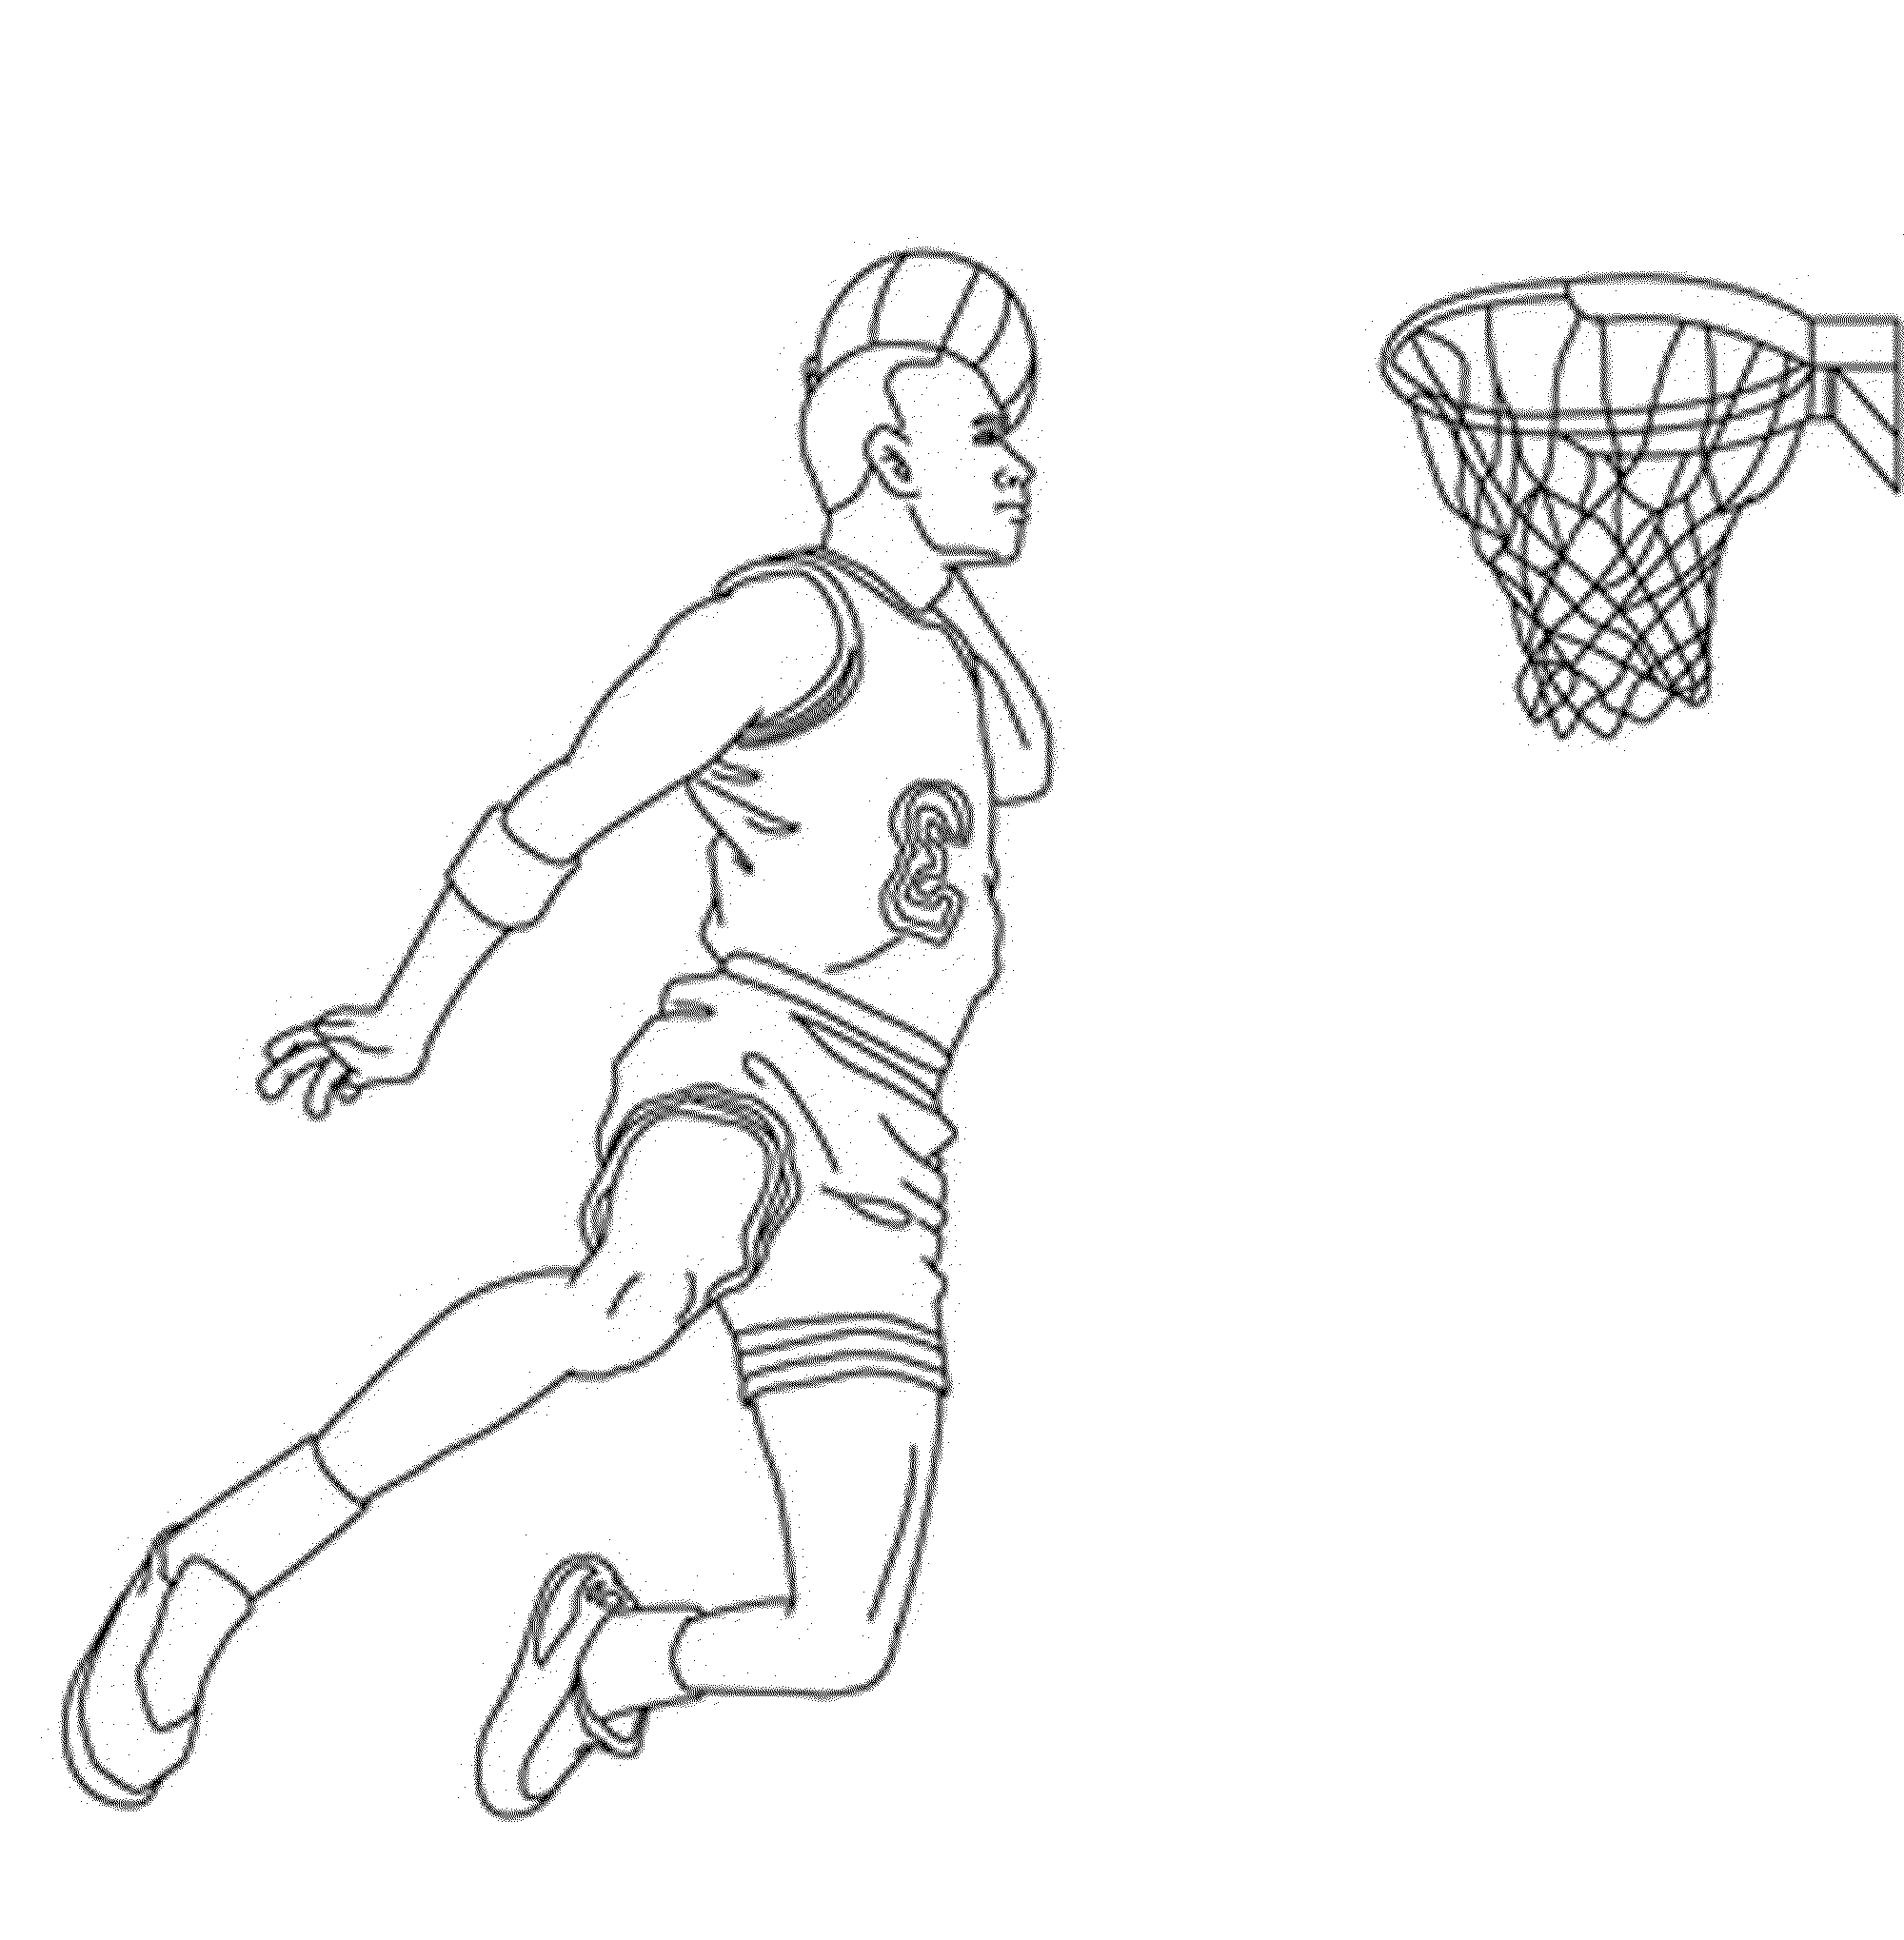 - College Basketball Coloring Pages - Printable Kids Colouring Pages